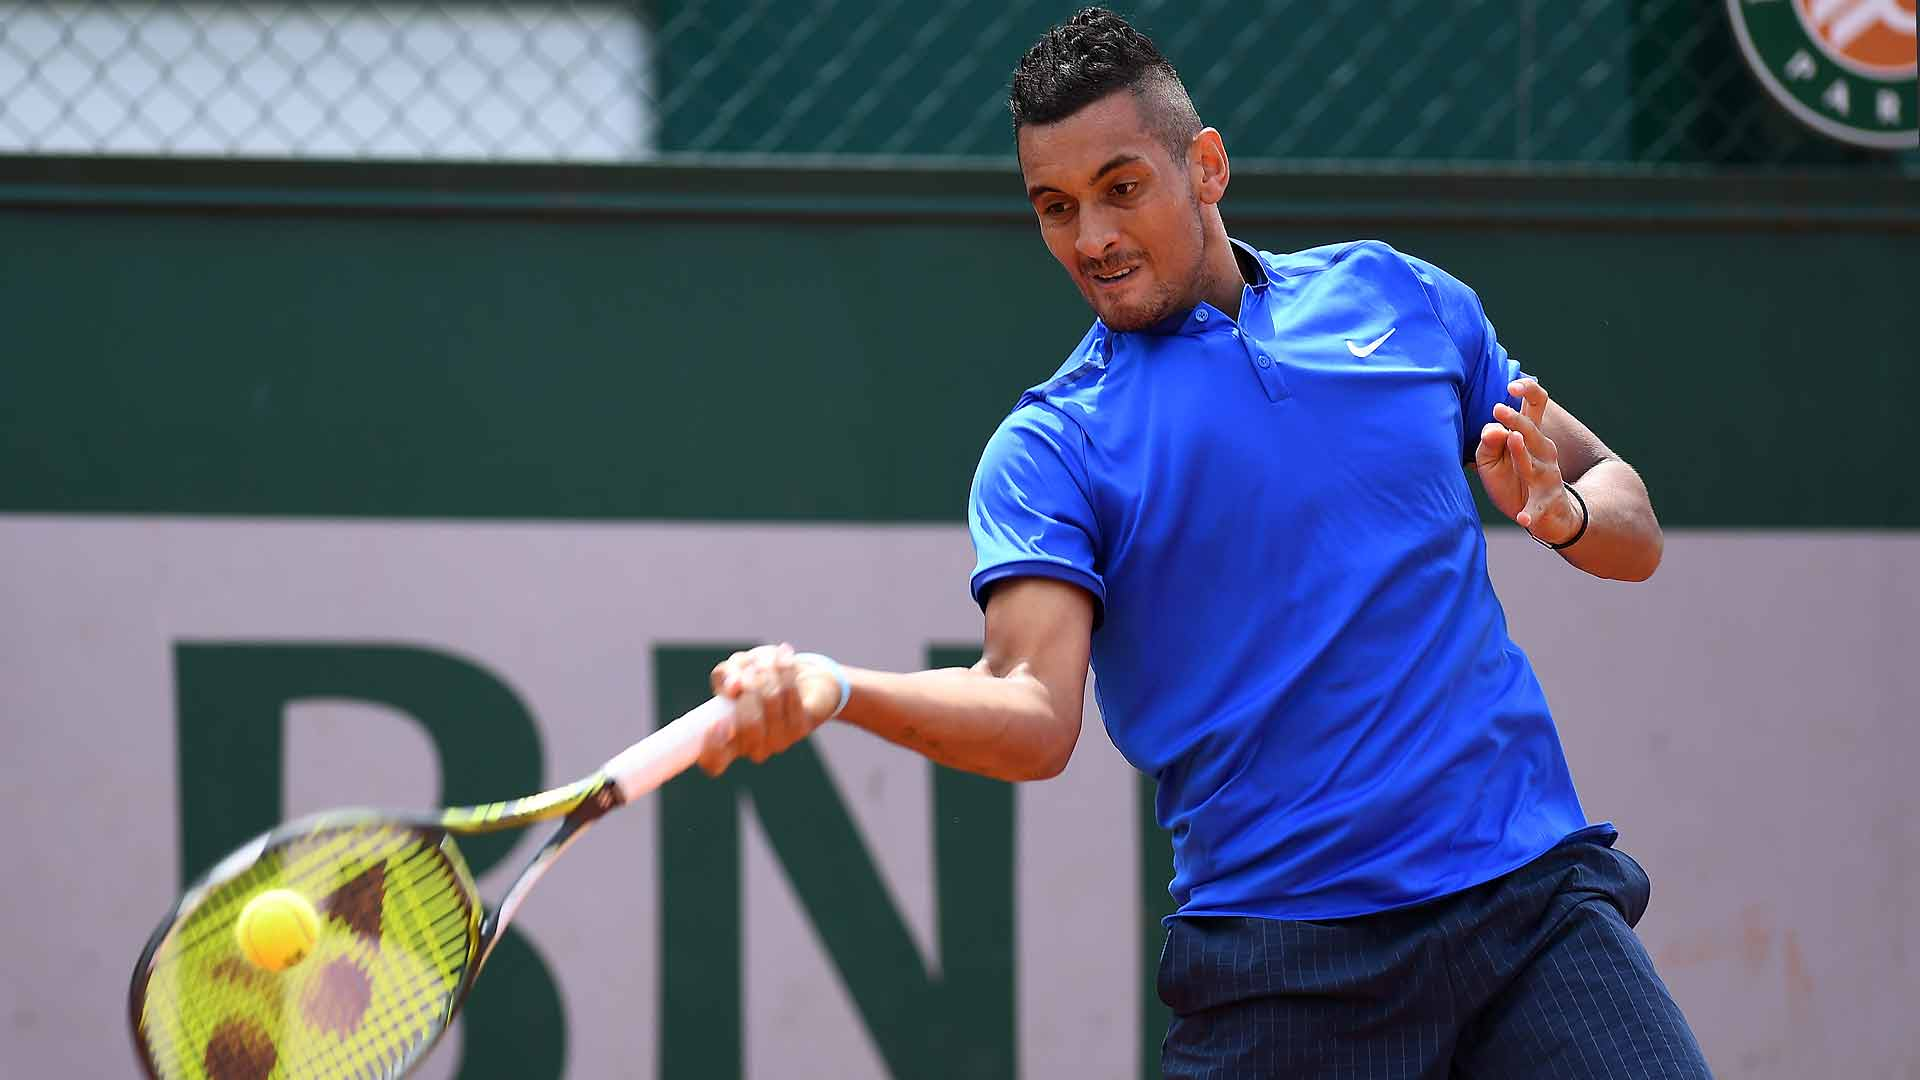 Nick Kyrgios cruised into the third round on Wednesday at Roland Garros.